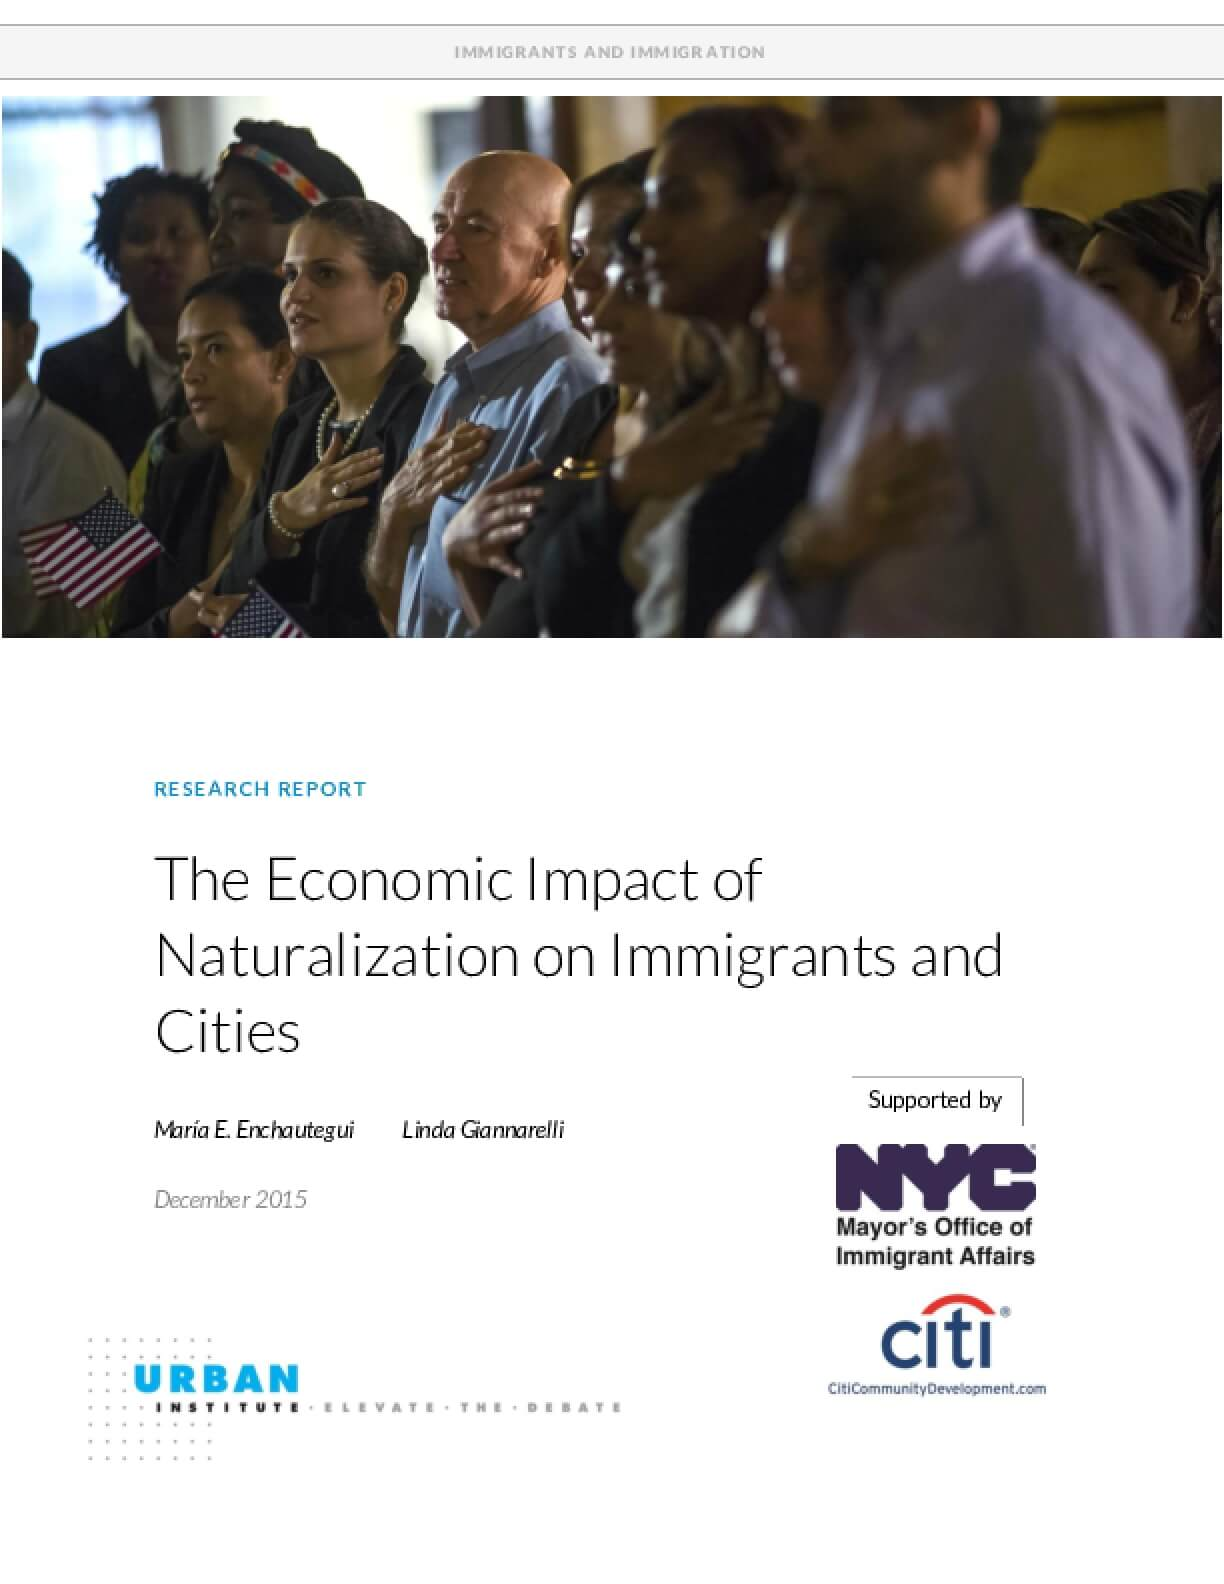 The Economic Impact of Naturalization on Immigrants and Cities